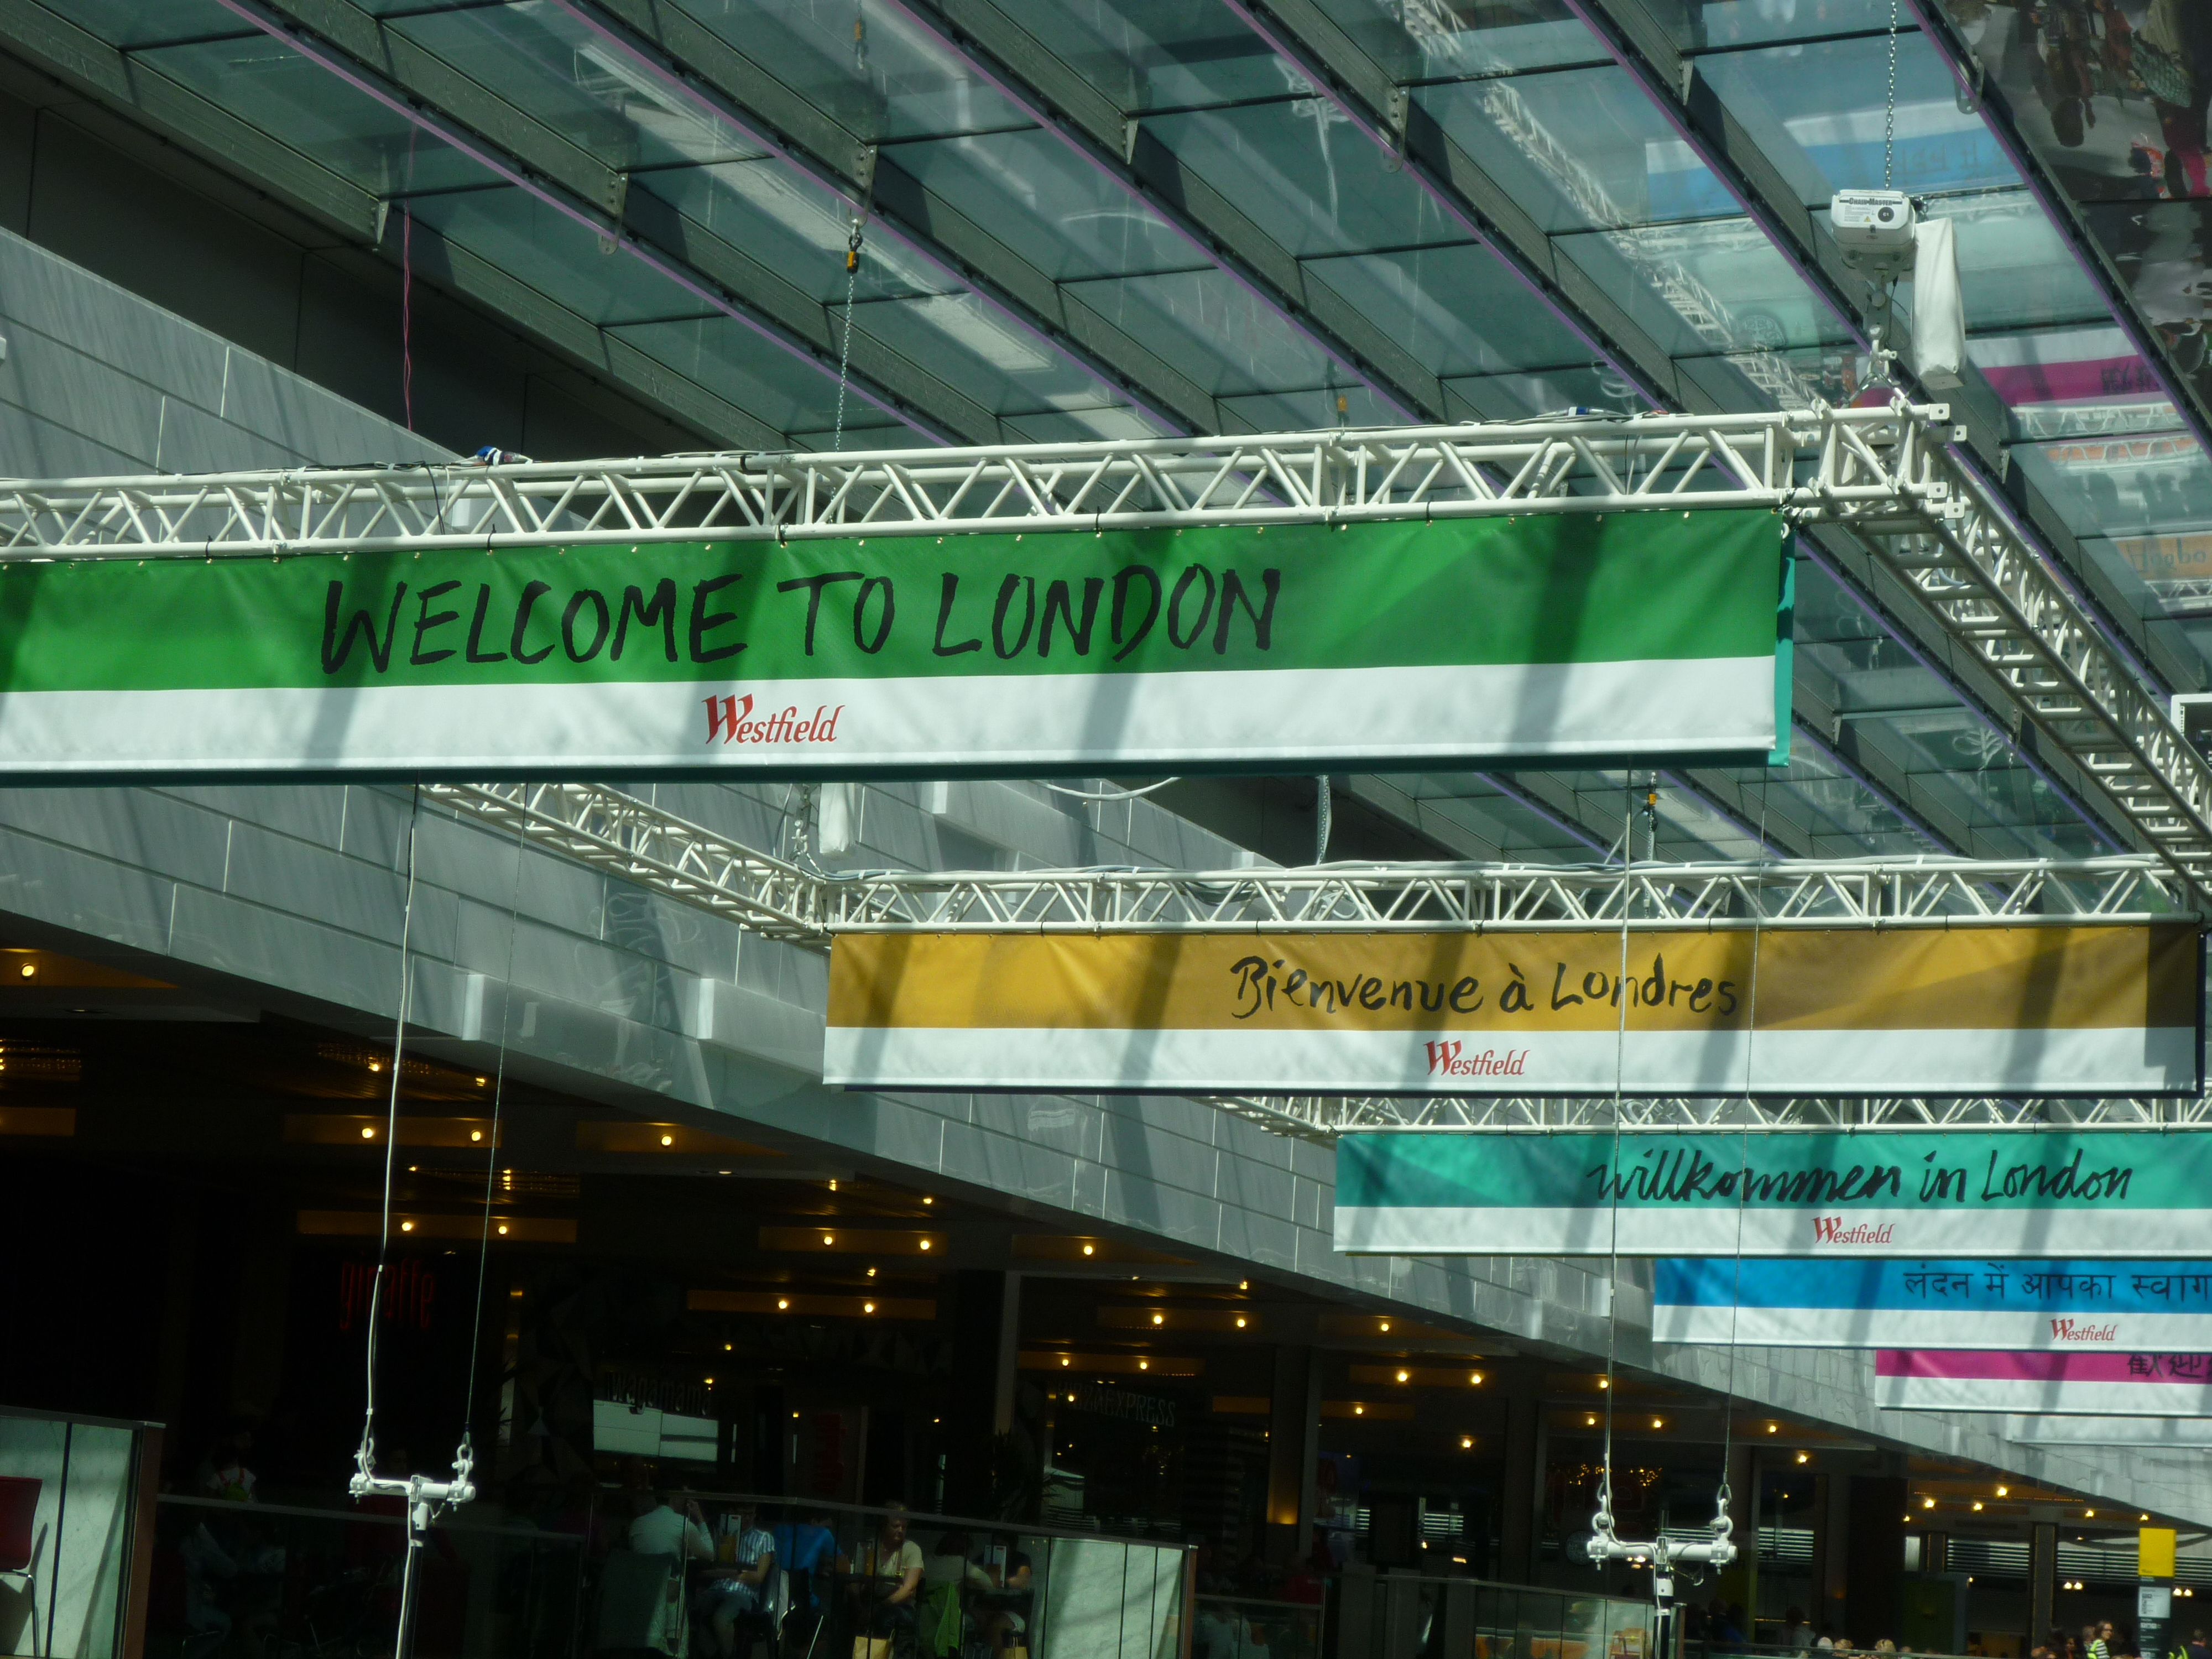 The 2012 Olympics Are Here! - Stratford tube station